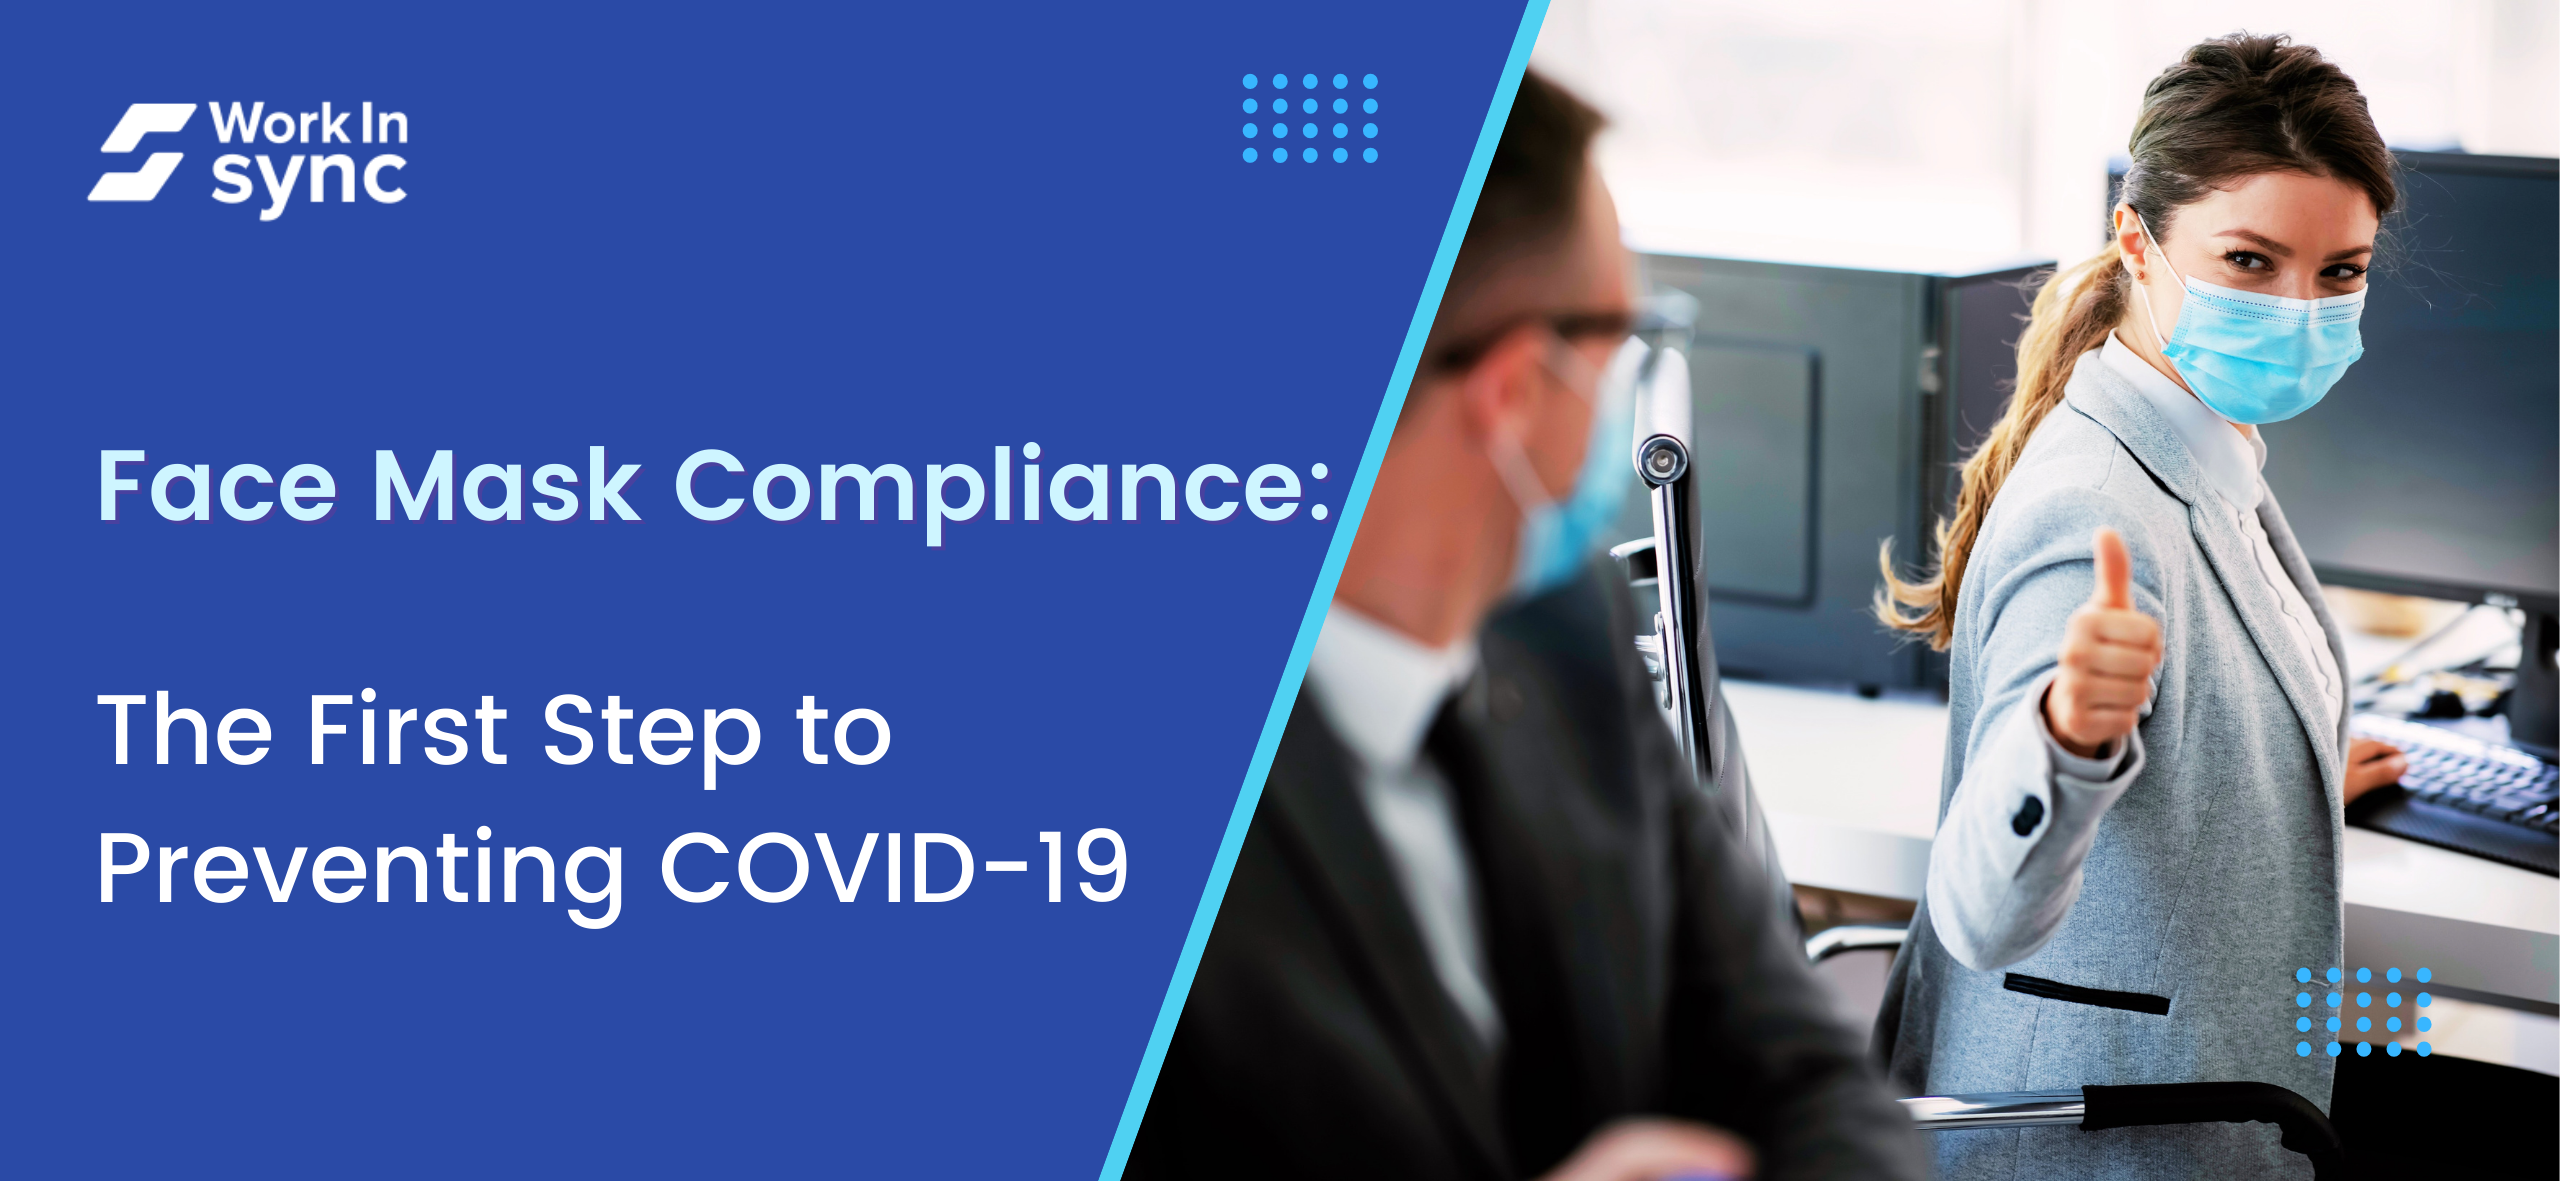 Face Mask Compliance: The First Step to Preventing COVID-19